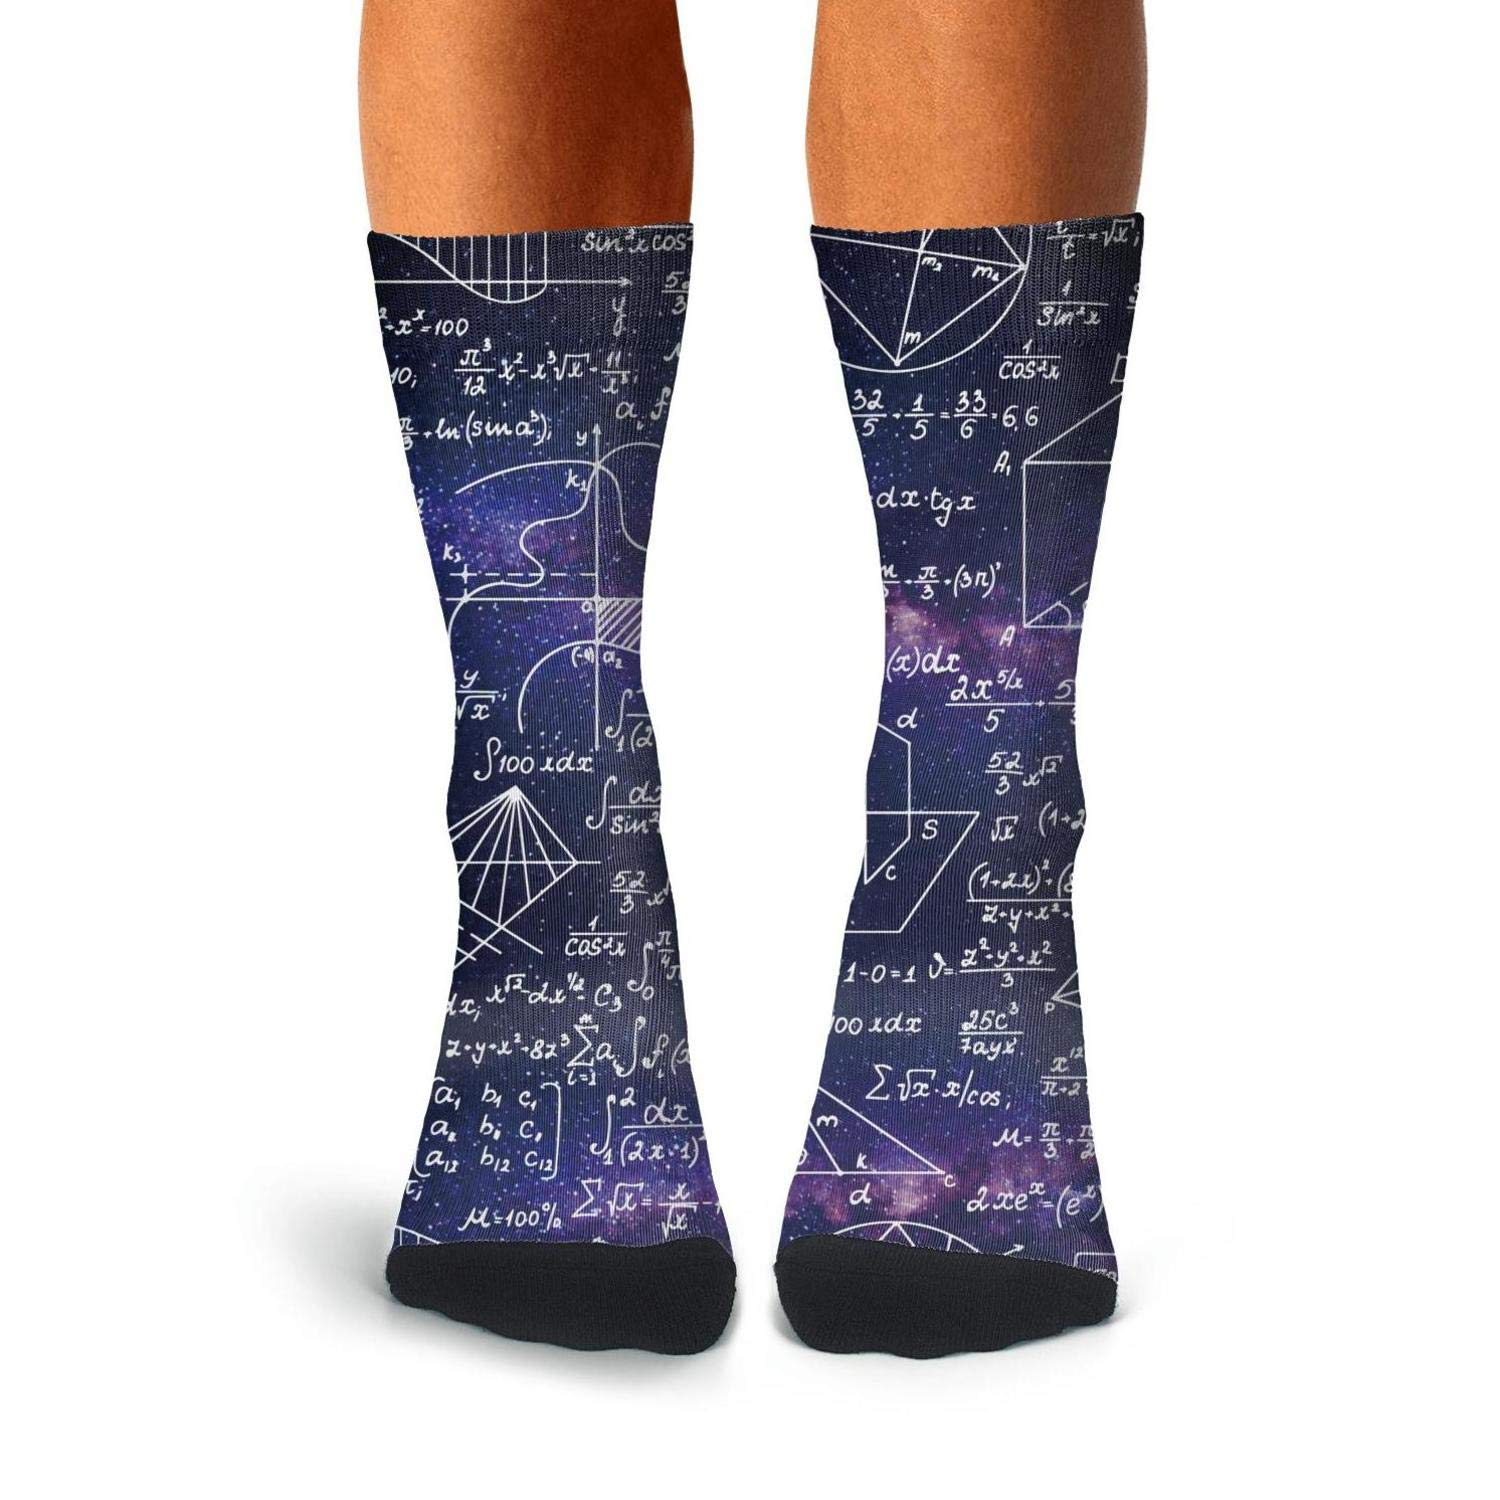 Math Class Formula Equations Black Backdrop Performance Sports Non-Slid High Ankle Socks for men